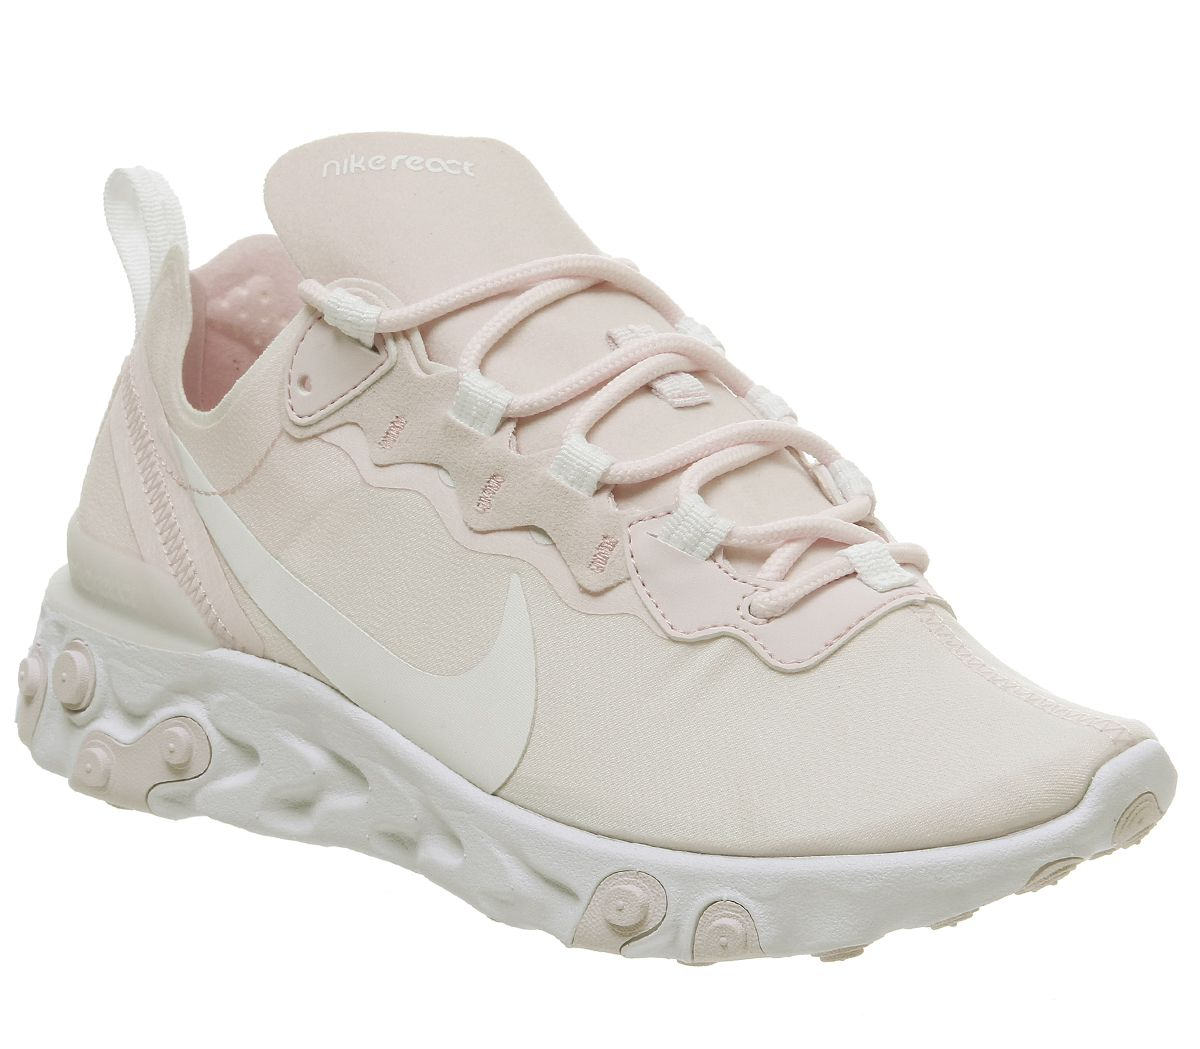 half off 80fa9 605f8 Nike React Element 55 Trainers Pale Pink White White Pale Pink F ...